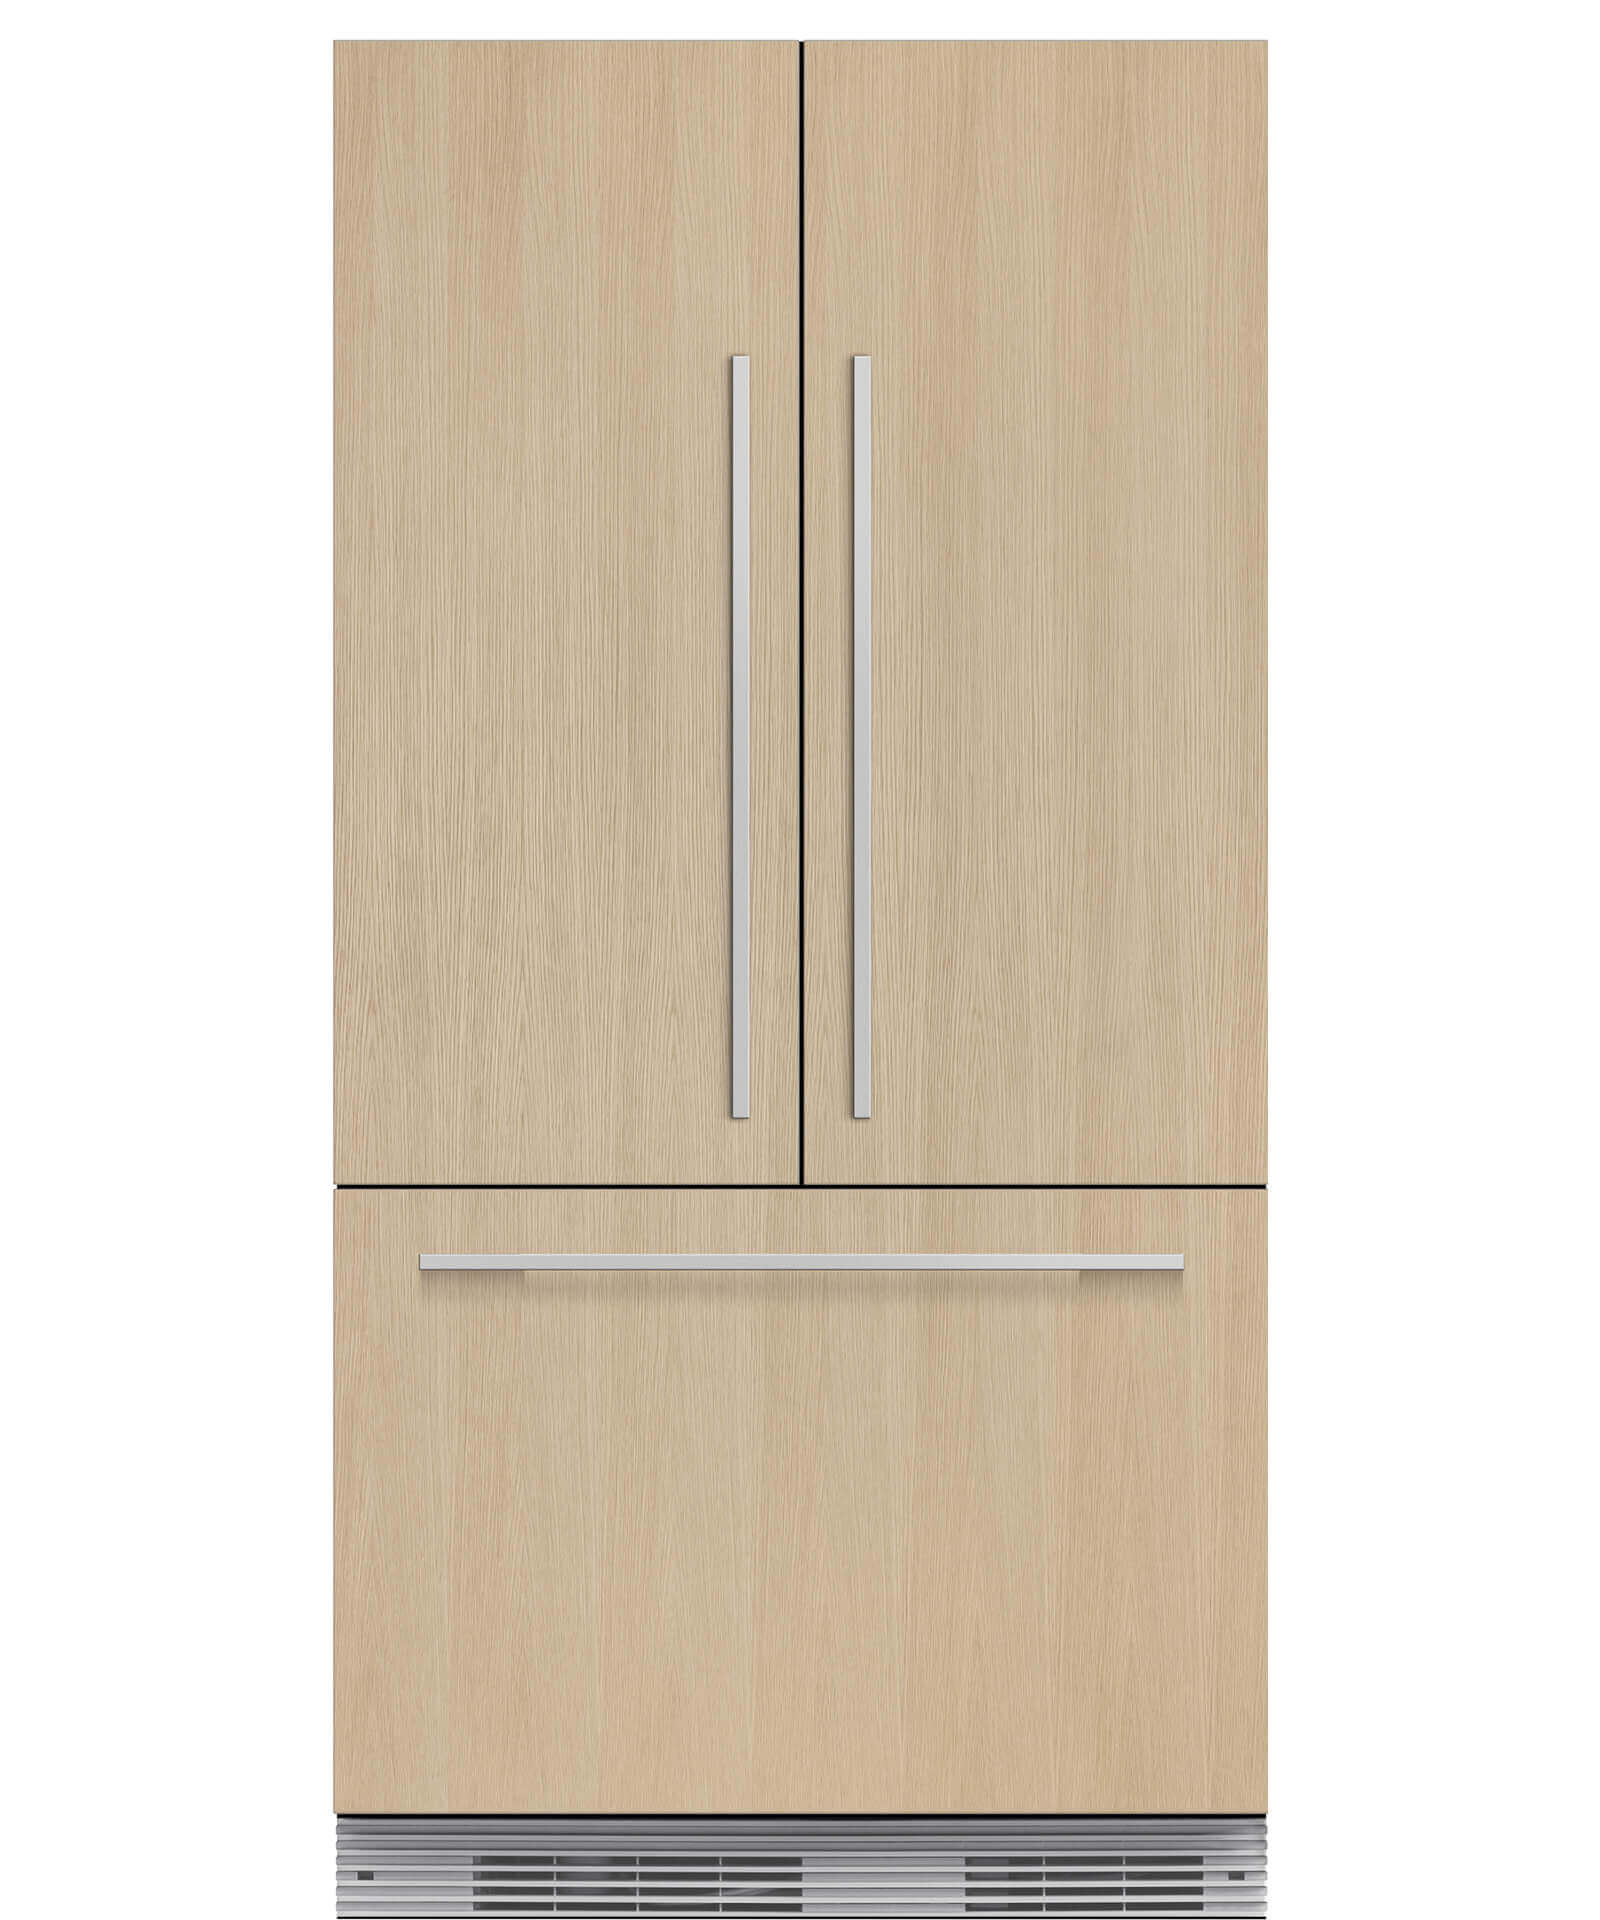 Rs90a1 Activesmart Fridge 900mm French Door Slide In Panel Ready